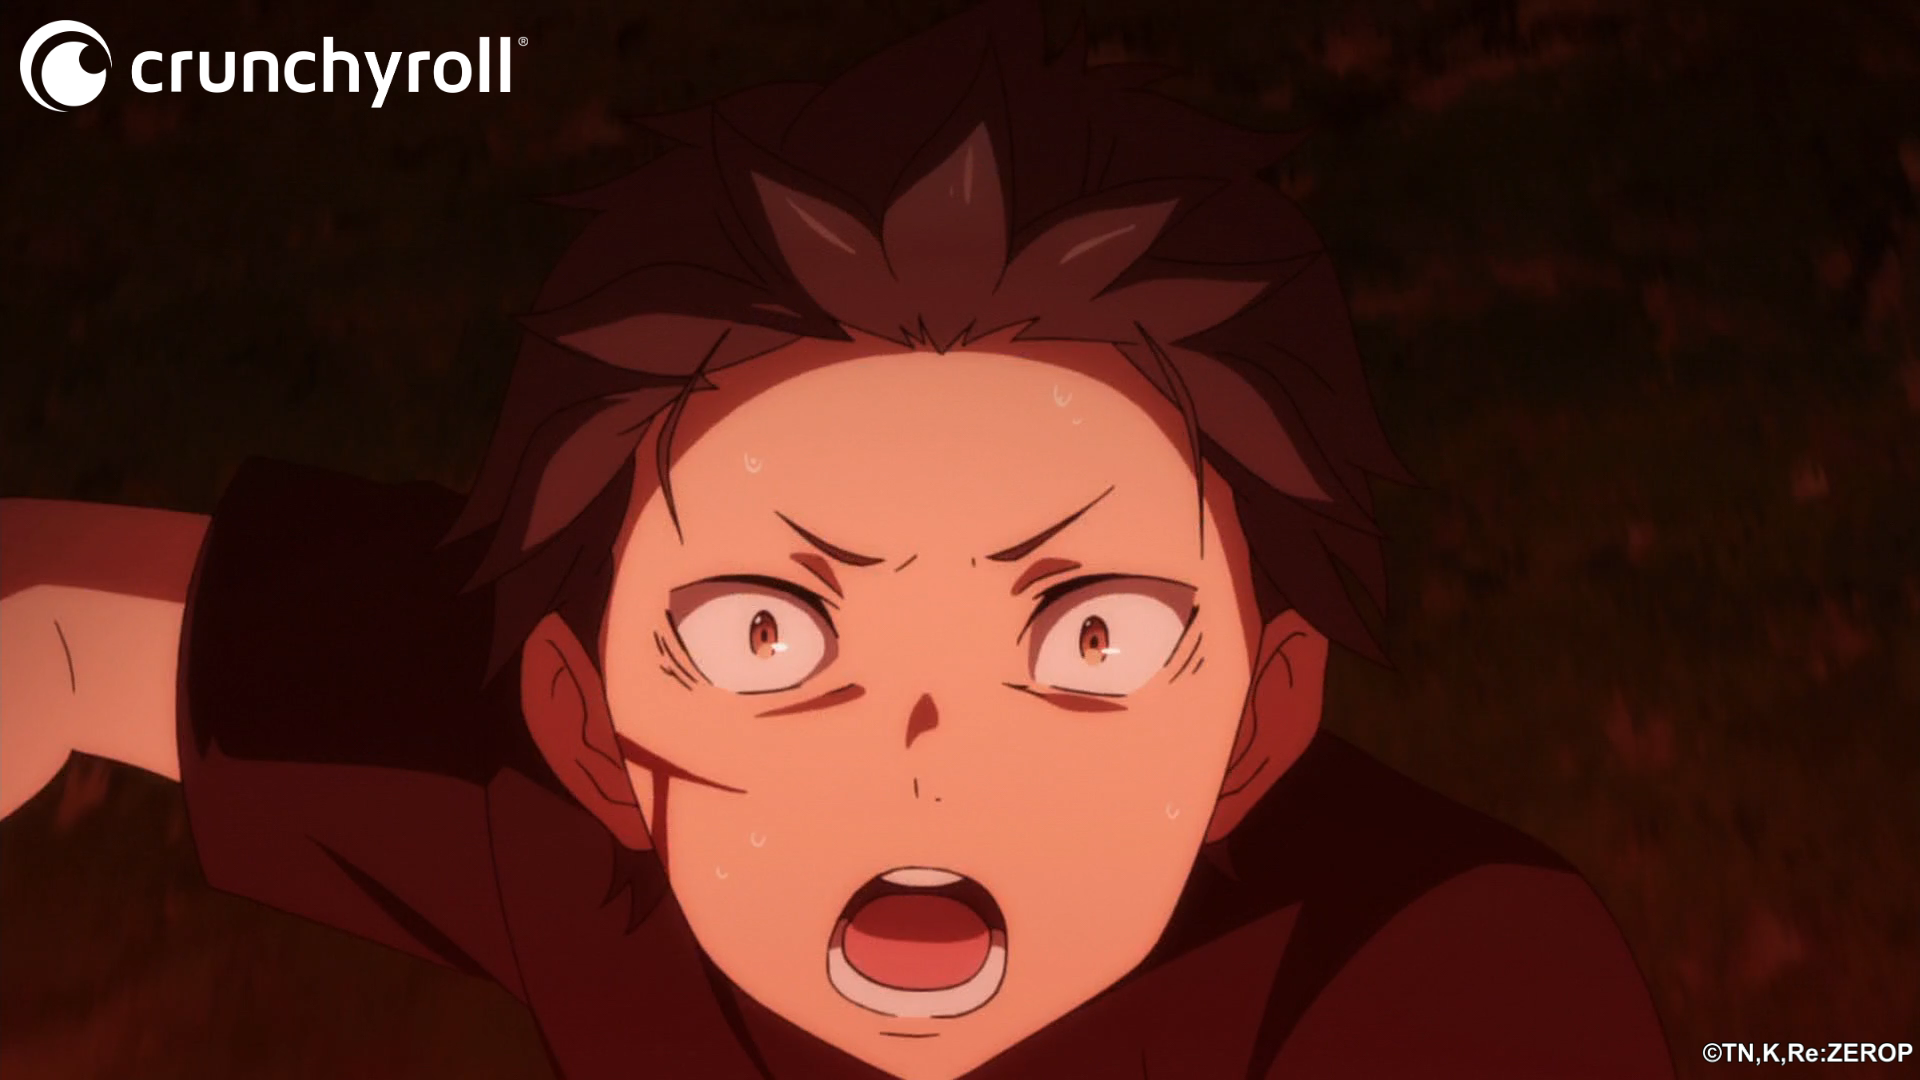 Natsuki Subaru attempts to flee from a murderous Rem in a scene from the Re:ZERO -Starting Life in Another World- TV anime.